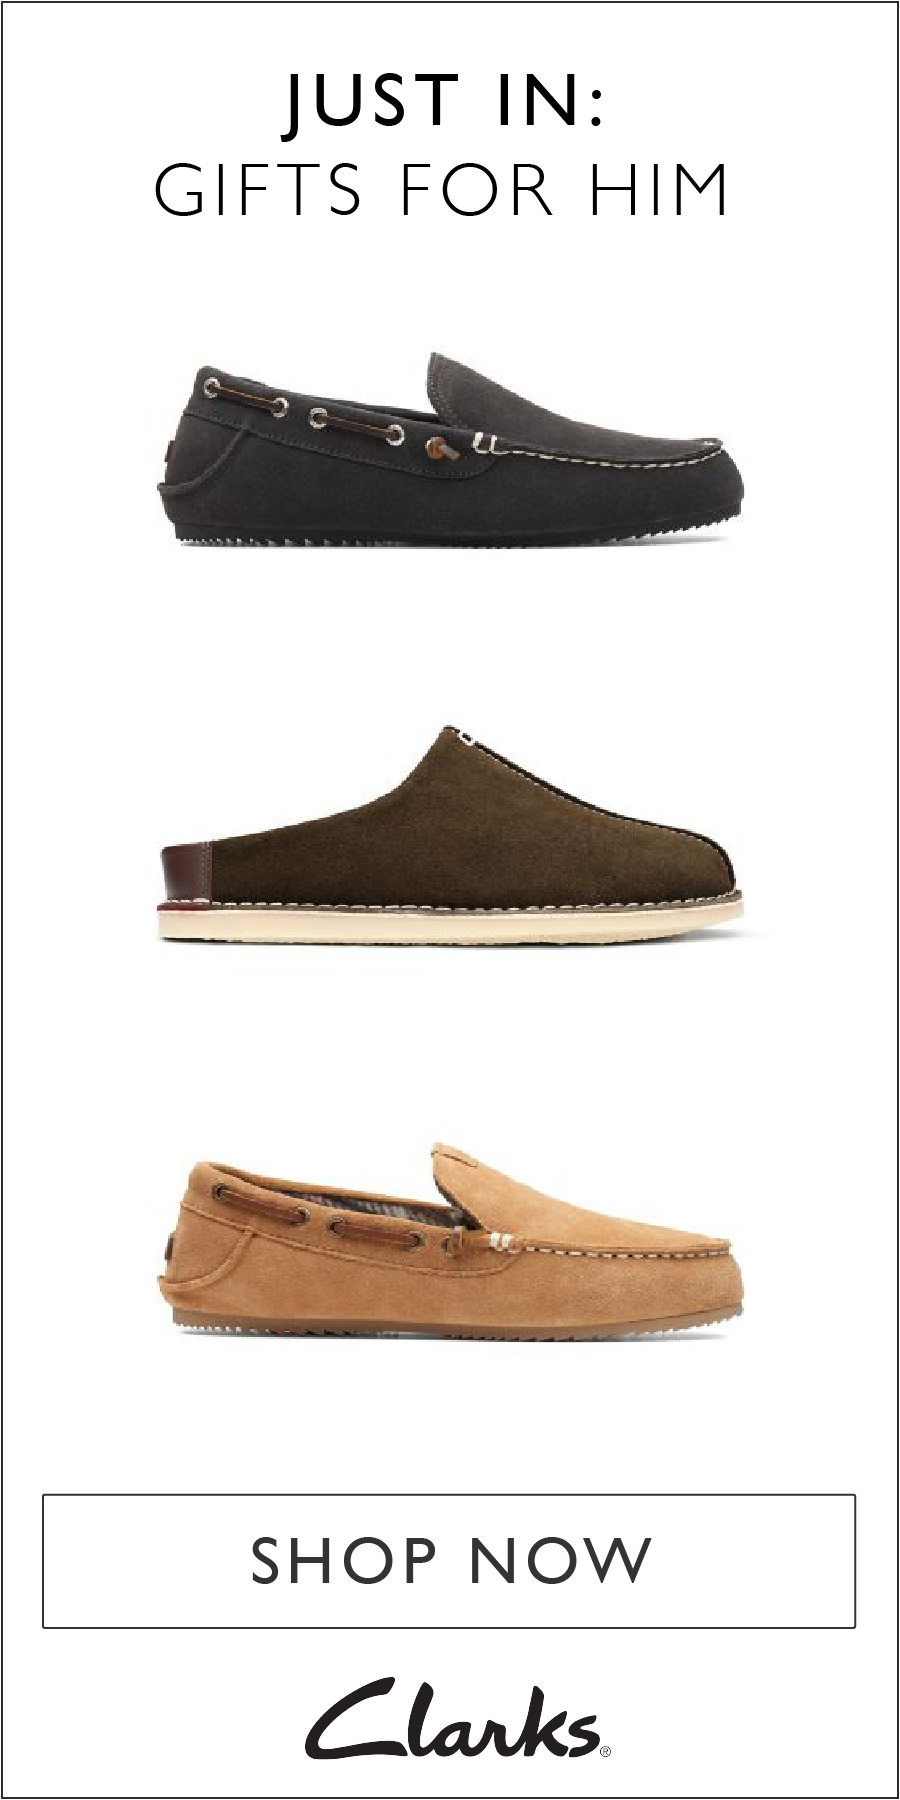 6dd82e0e4 Tis the season for cozy footwear! Step into comfort with these men s  slippers from Clarks. Whether you prefer moccasins or slides